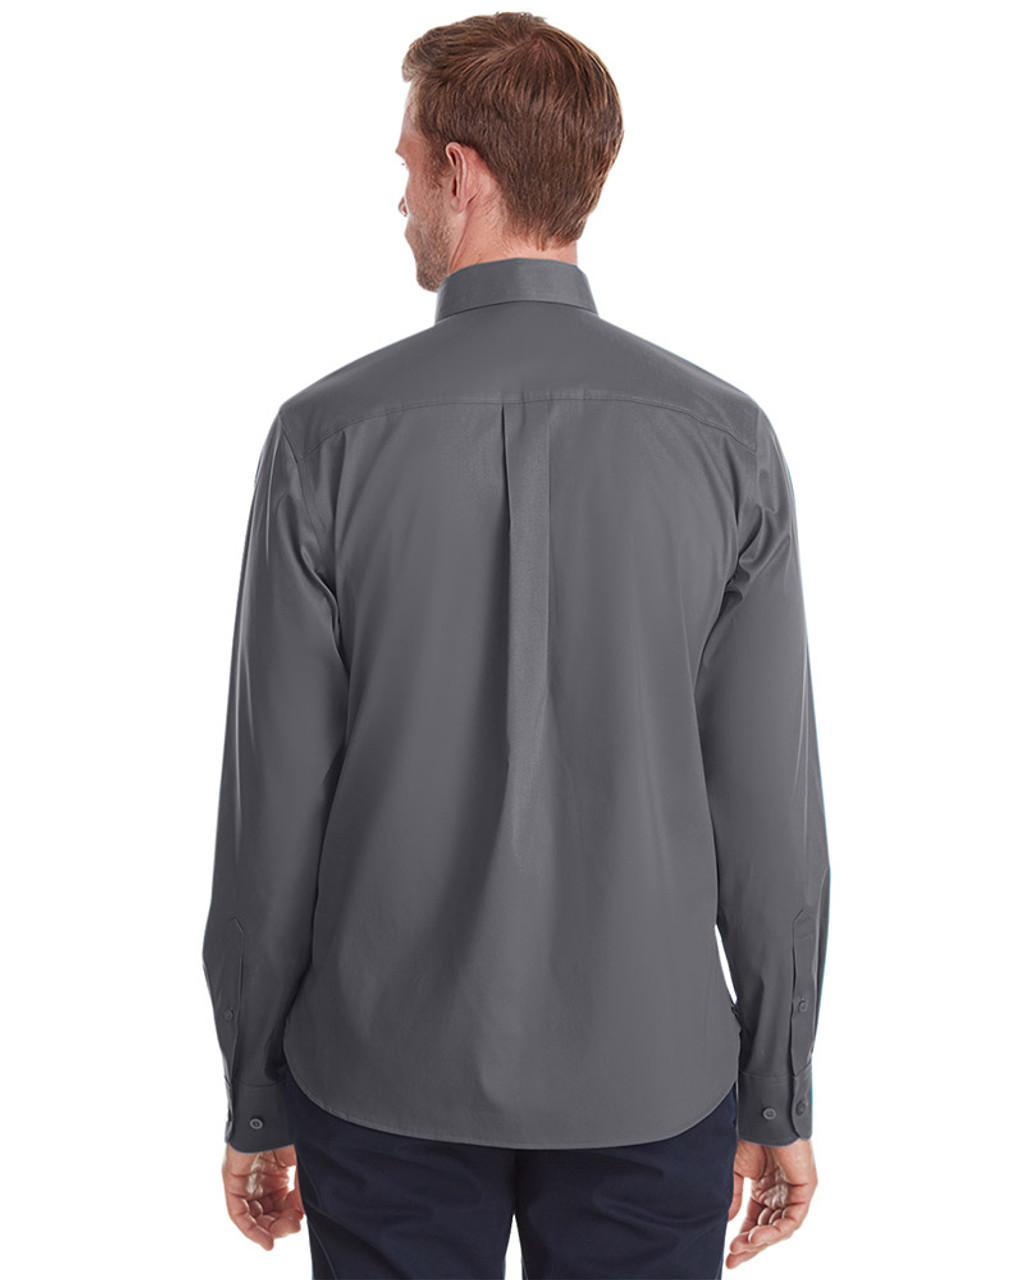 Graphite - back, DG561 Devon & Jones Men's Crown Collection™ Stretch Broadcloth Untucked Shirt | Blankclothing.ca